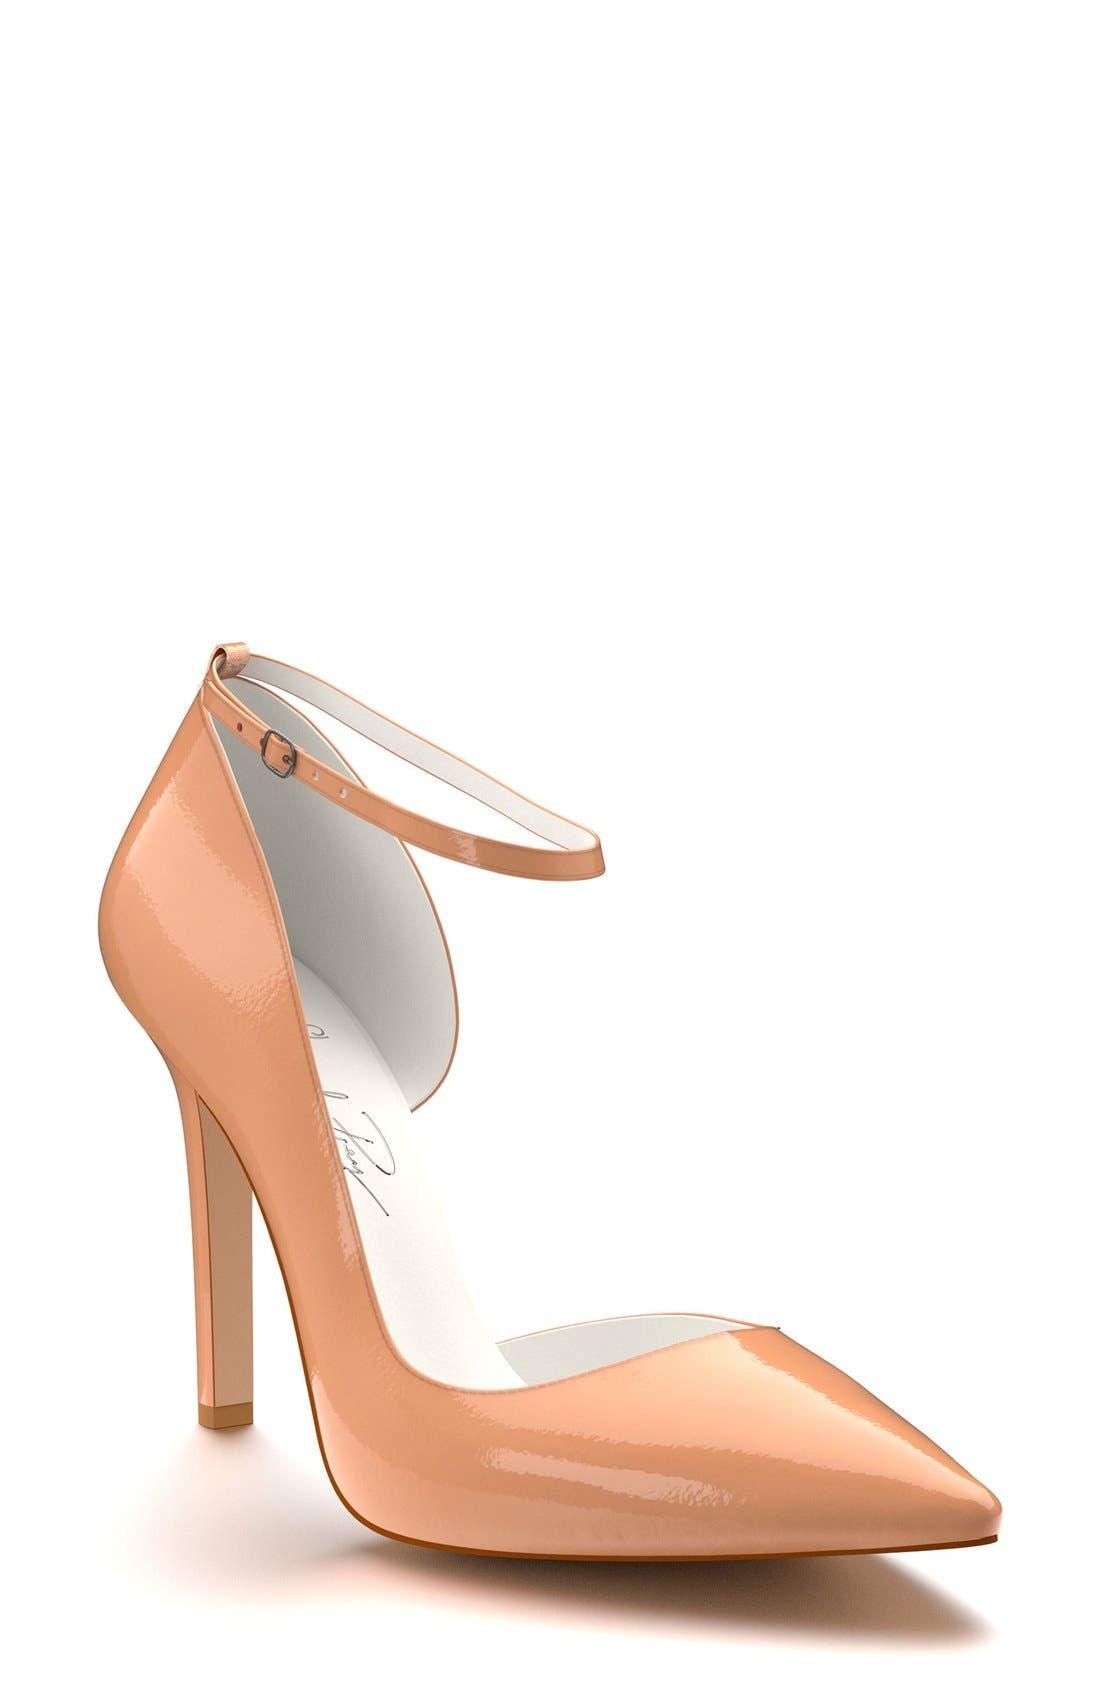 SHOES OF PREY Ankle Strap d'Orsay Pump